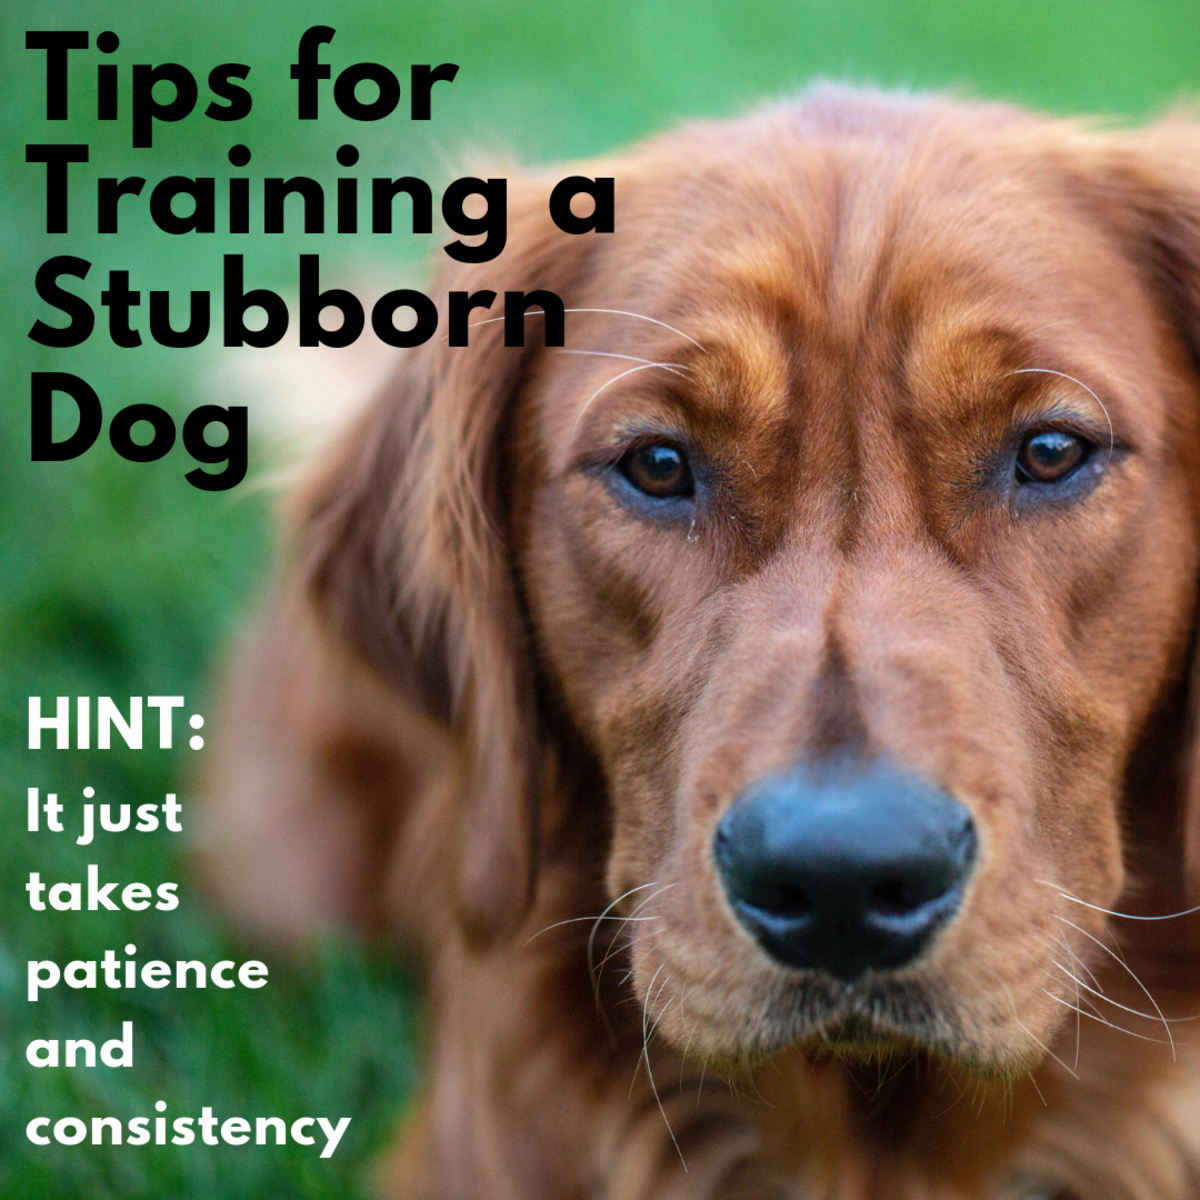 How to Train Stubborn Dogs - PetHelpful - By fellow animal lovers and  experts